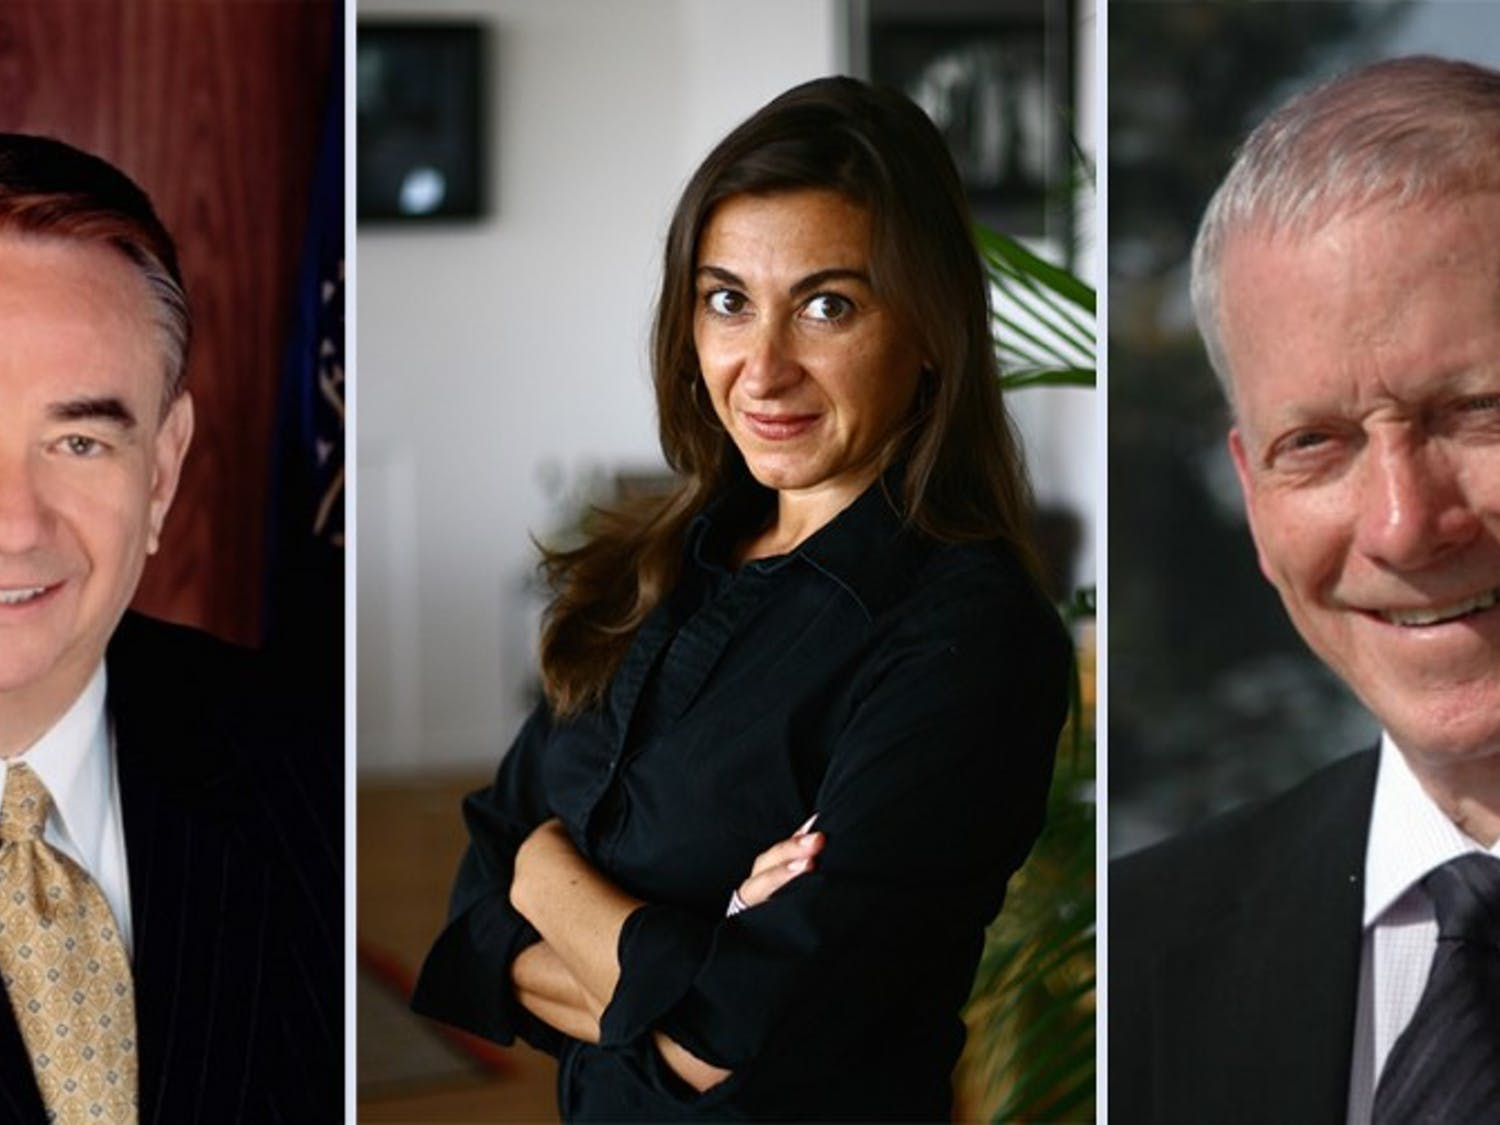 Left to right: Former Wisconsin Gov. Tommy Thompson, photojournalistLynsey Addario and biochemist William J. Rutter will be honored by UW-Madison with honorary degrees in a spring ceremony.